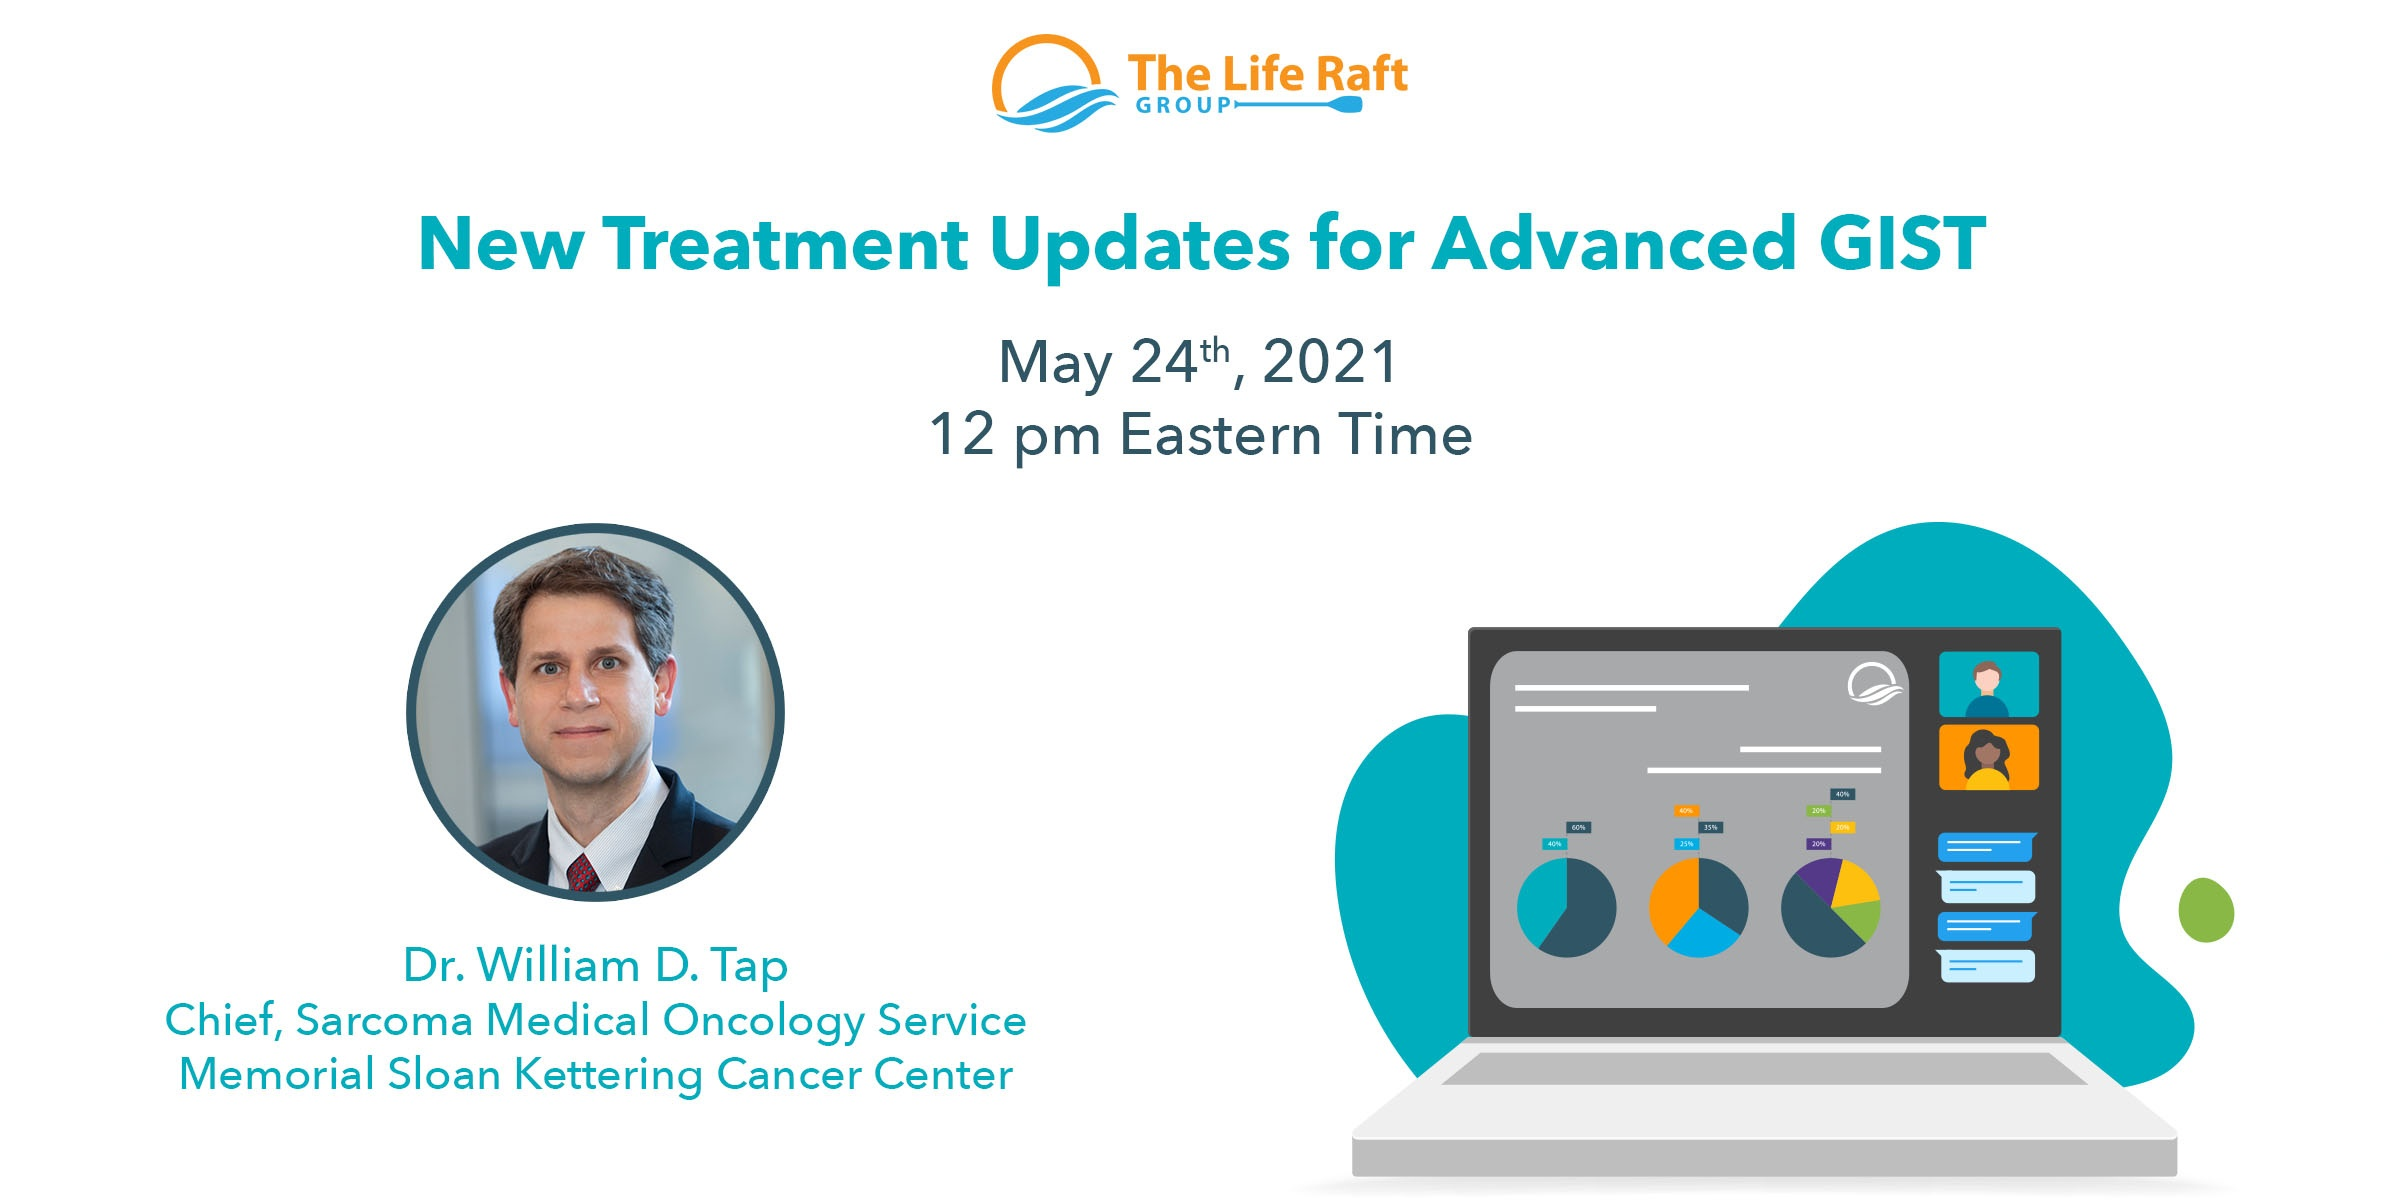 New Treatment Updates for Advanced GIST